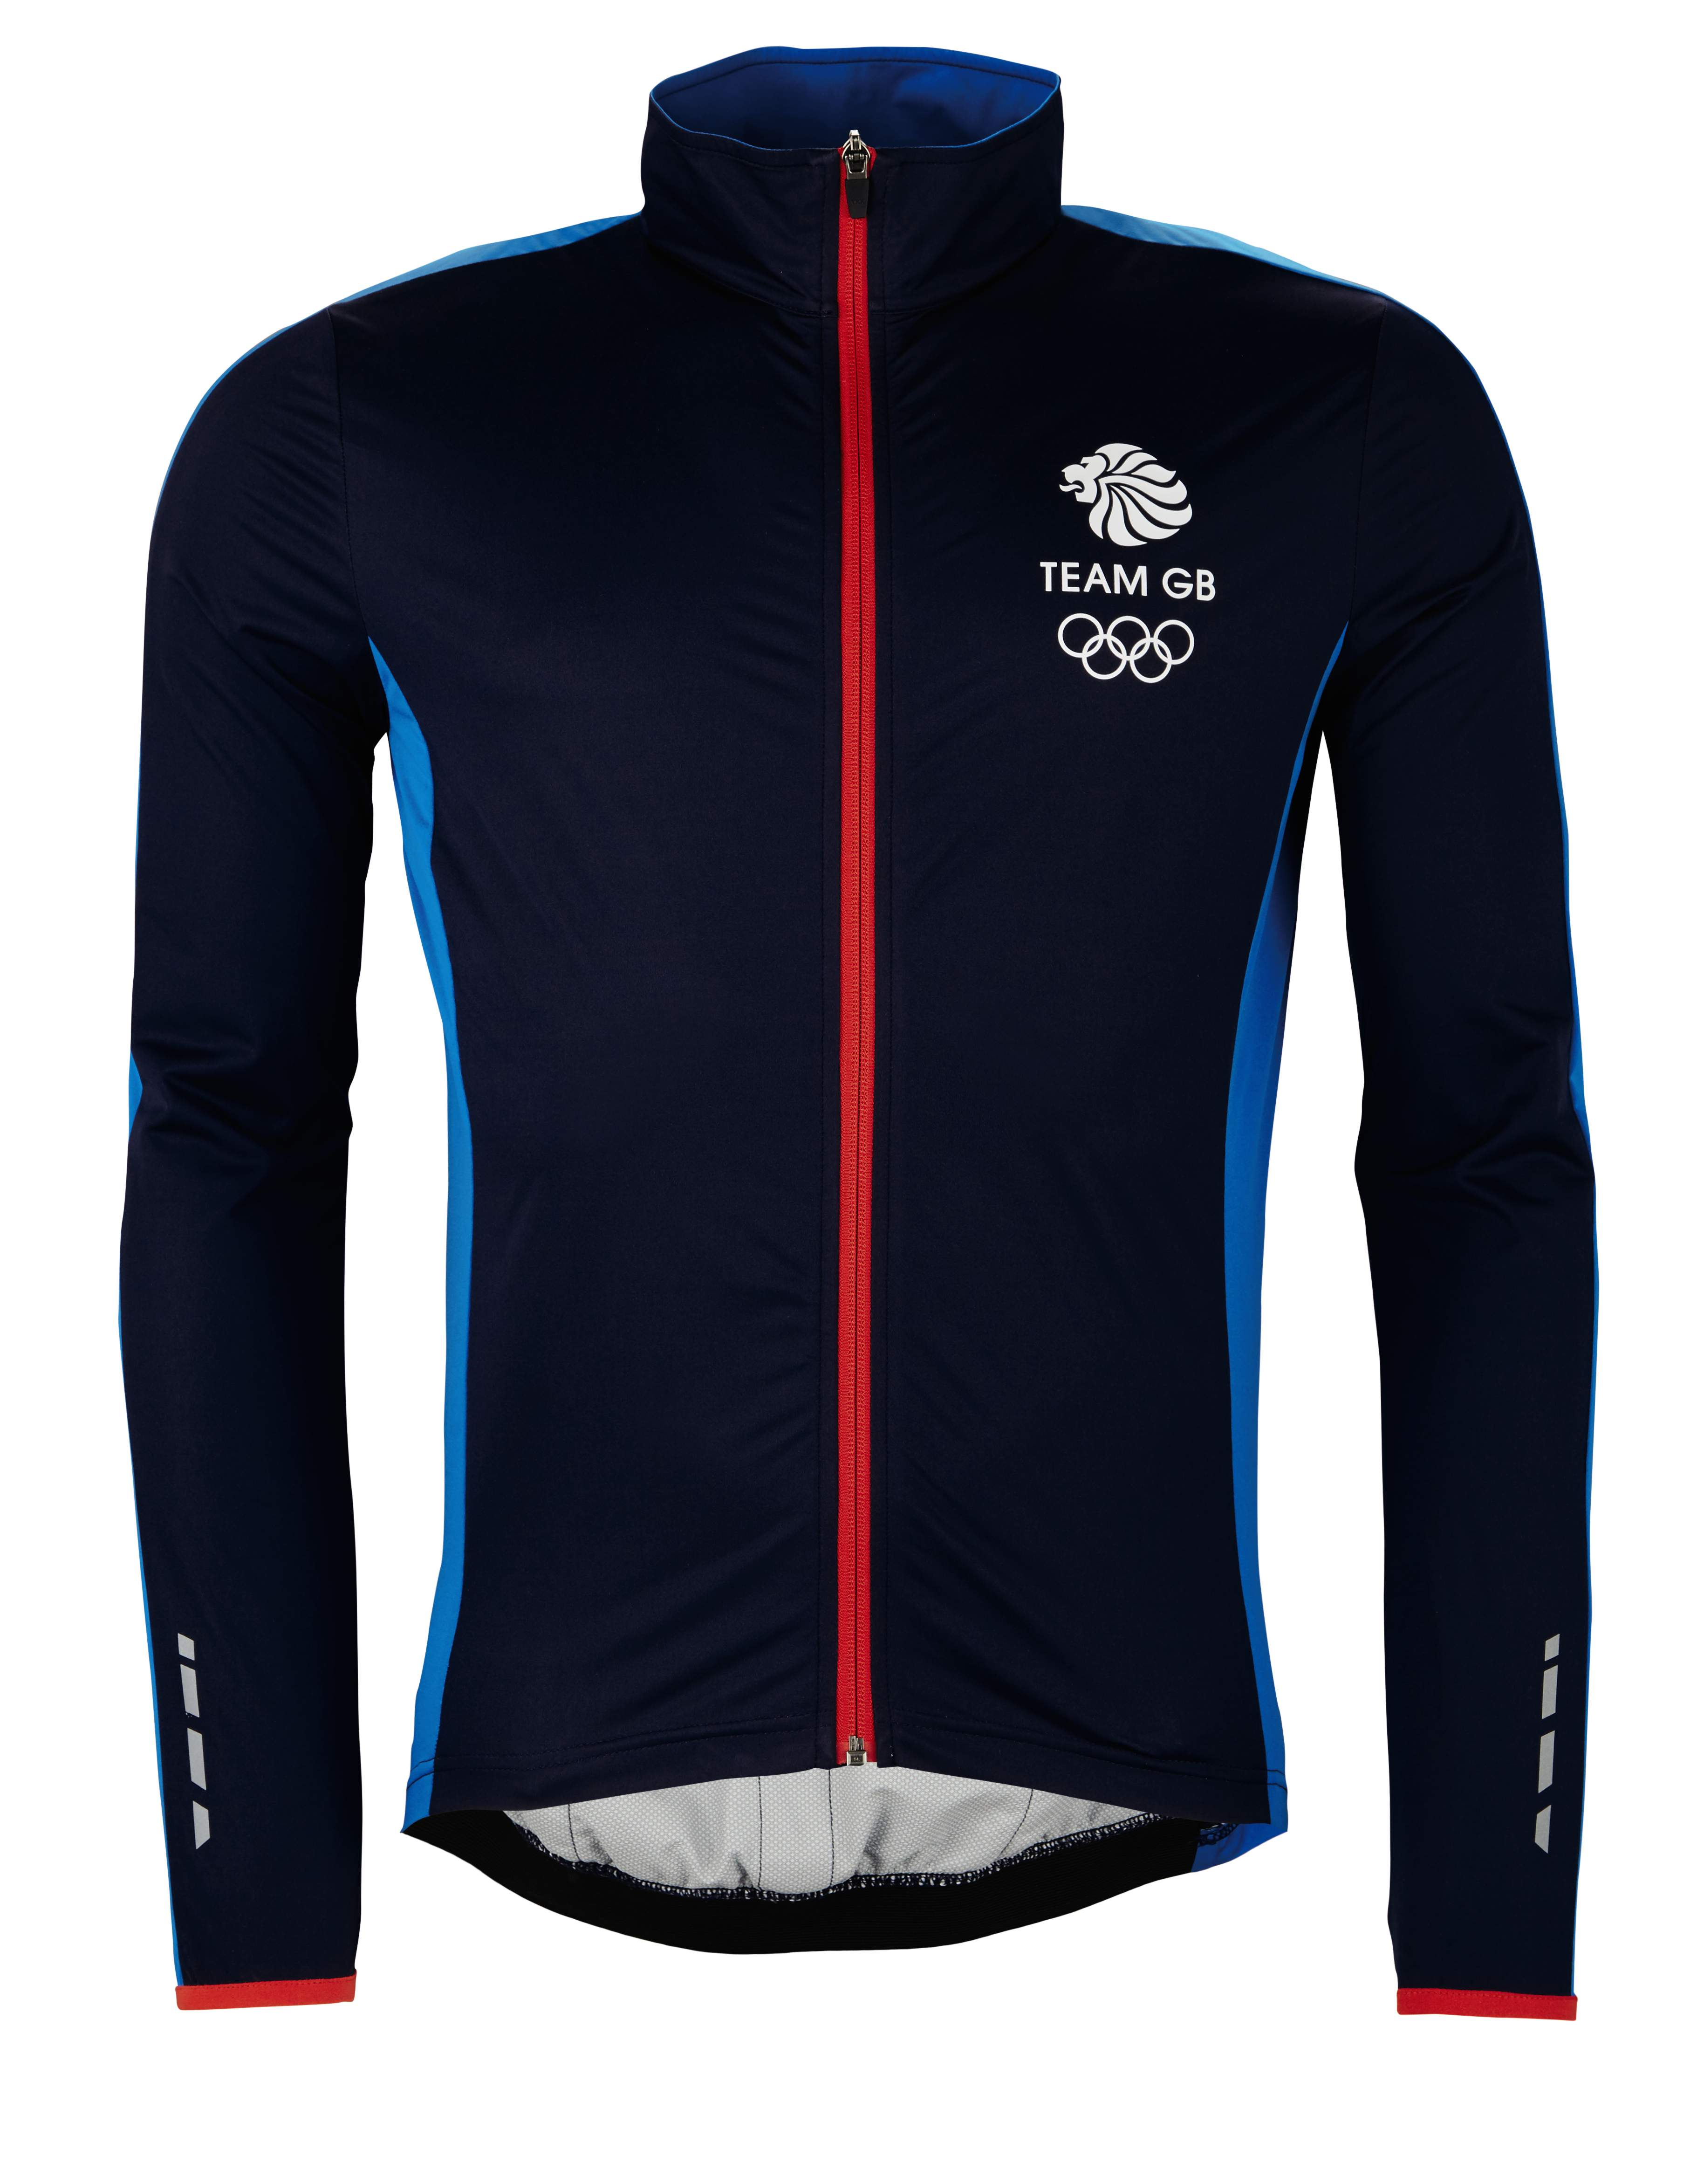 Mens ladies cycling jacket (6)